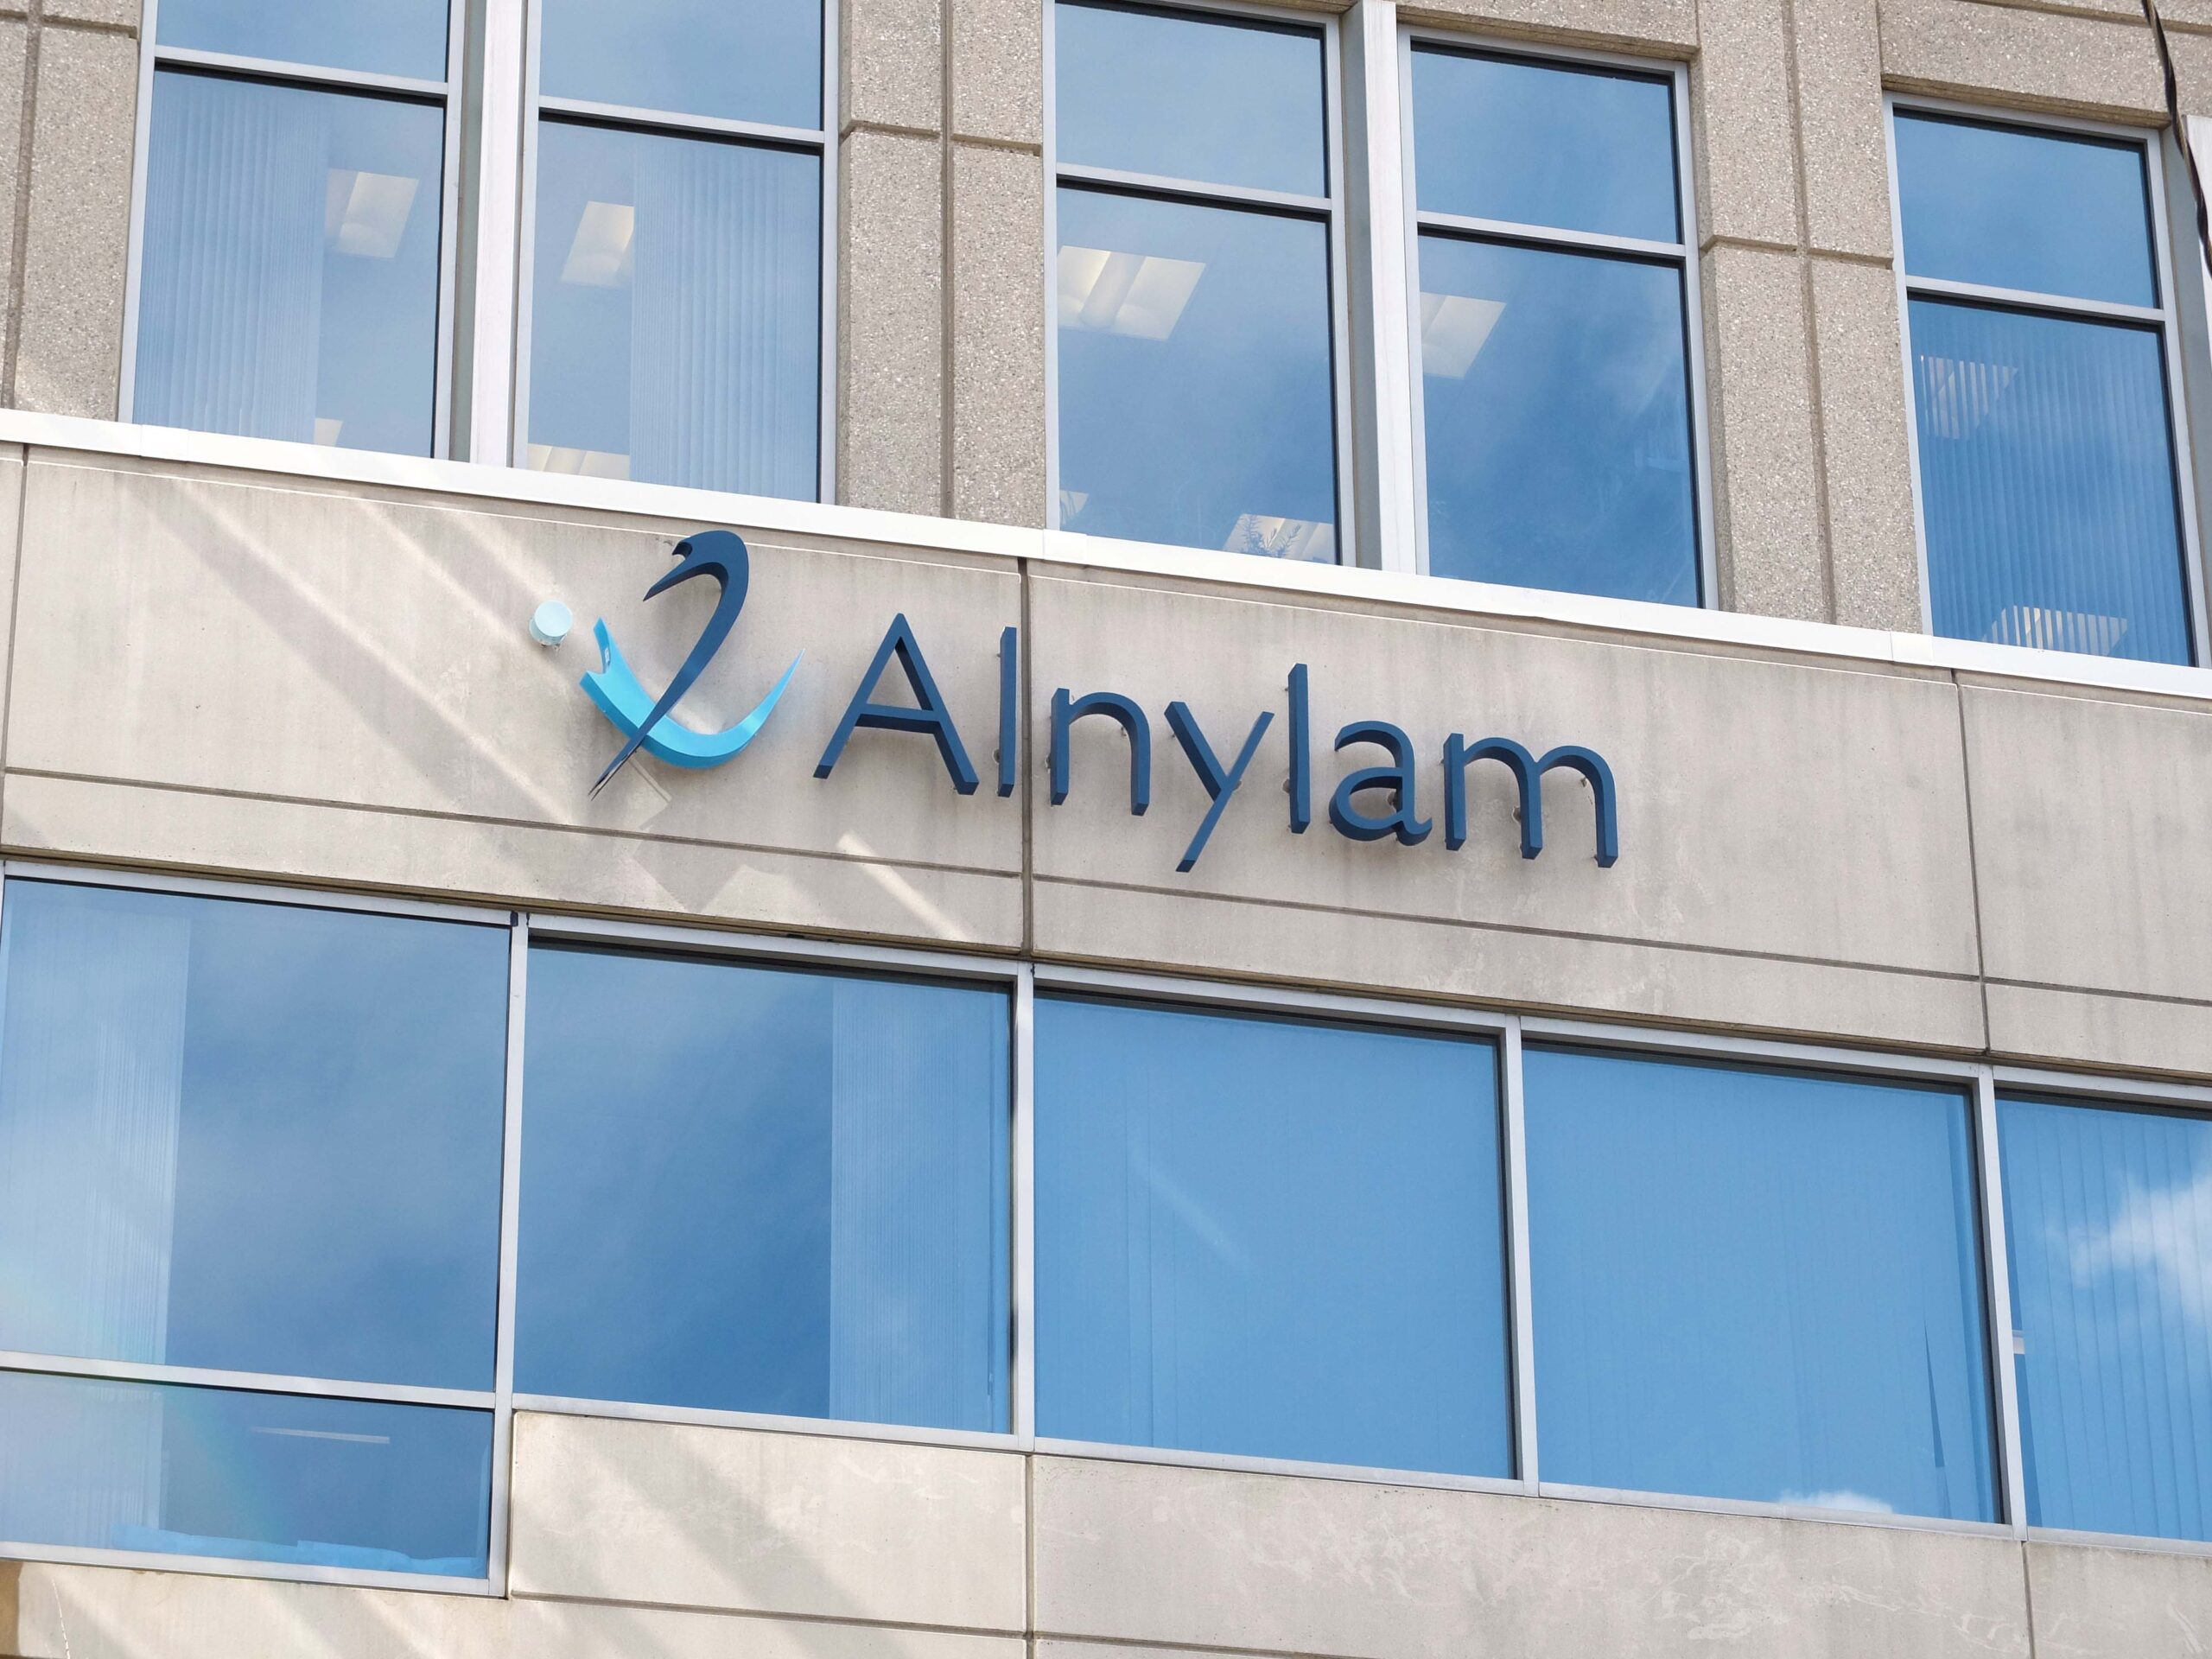 UK patients get early access to Alnylam's ultra-rare disease drug lumasiran